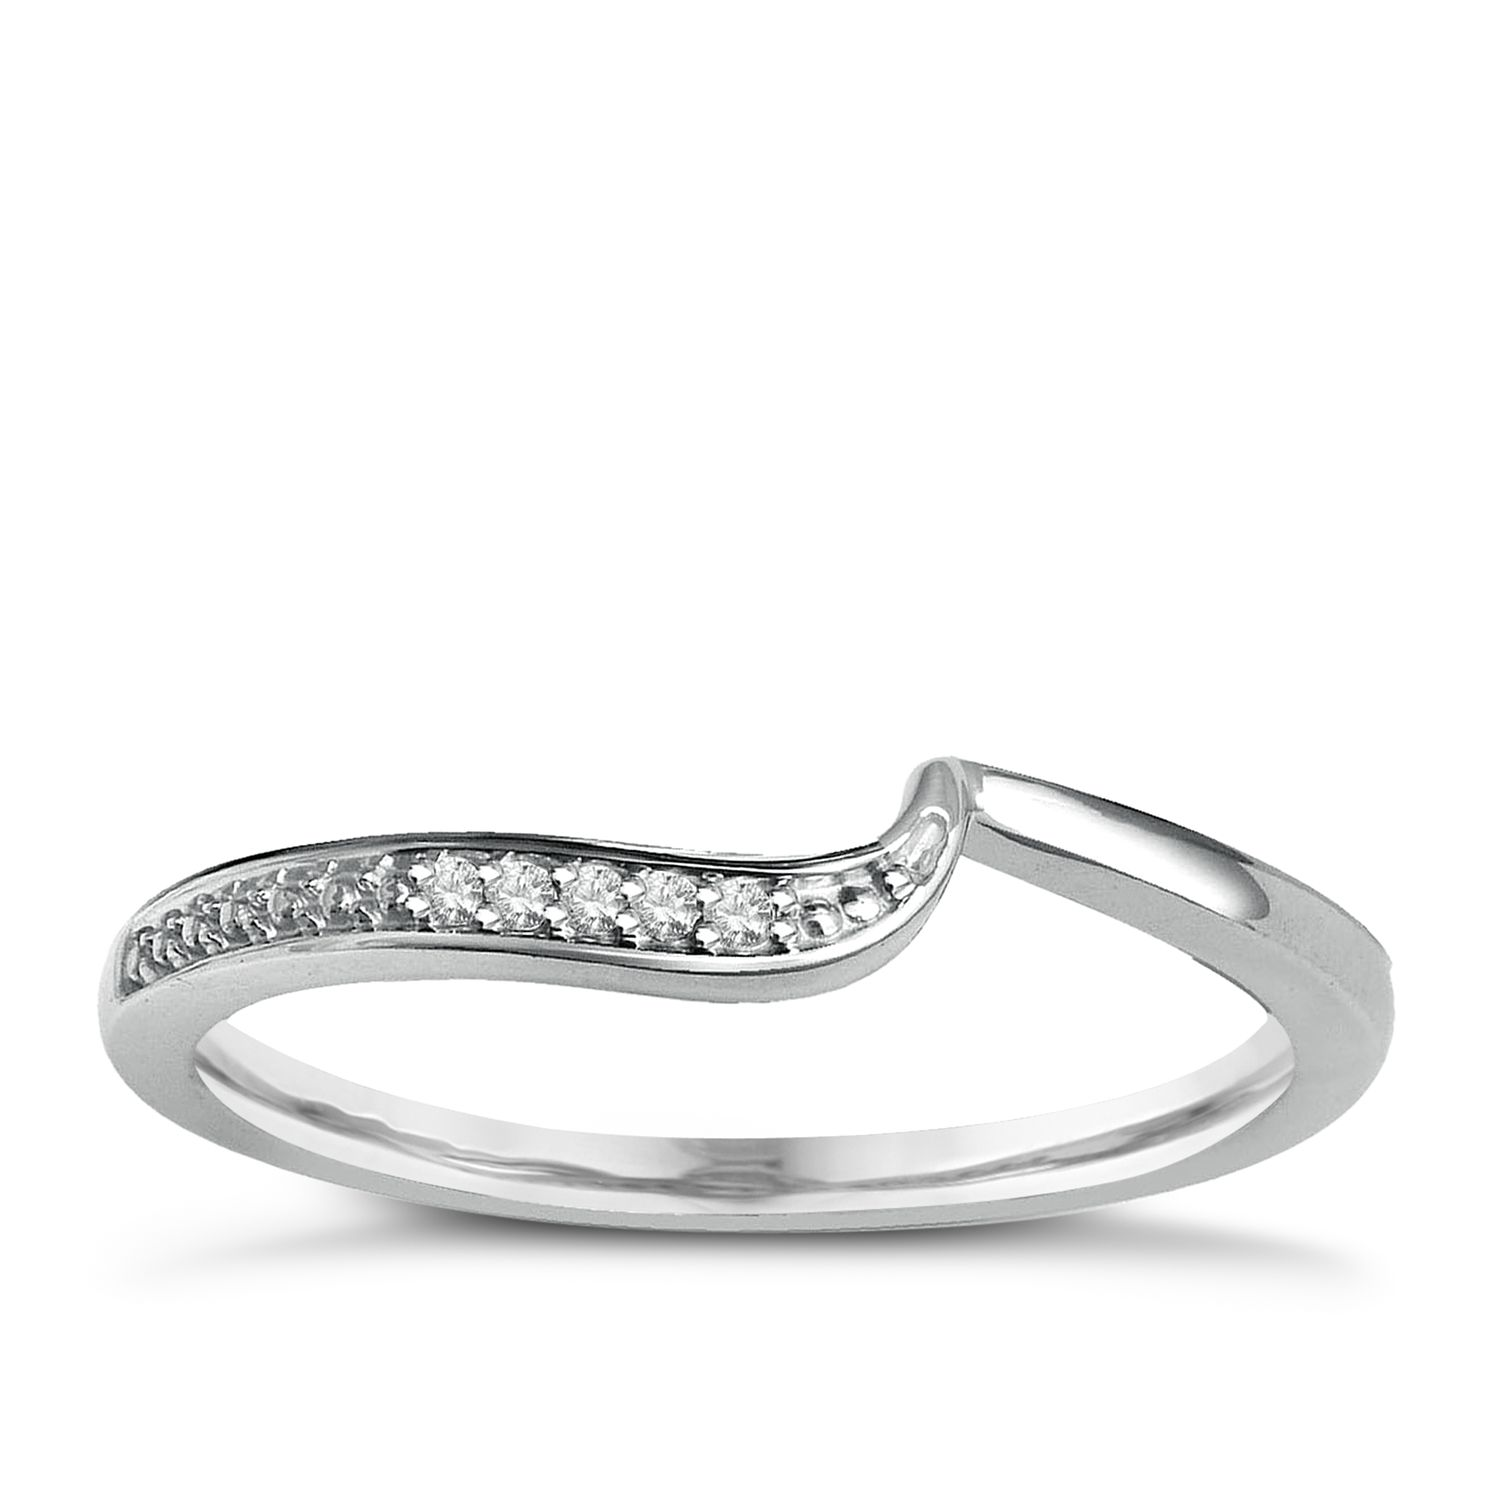 Perfect Fit 9ct White Gold With Diamond Eternity Ring - Product number 2310481